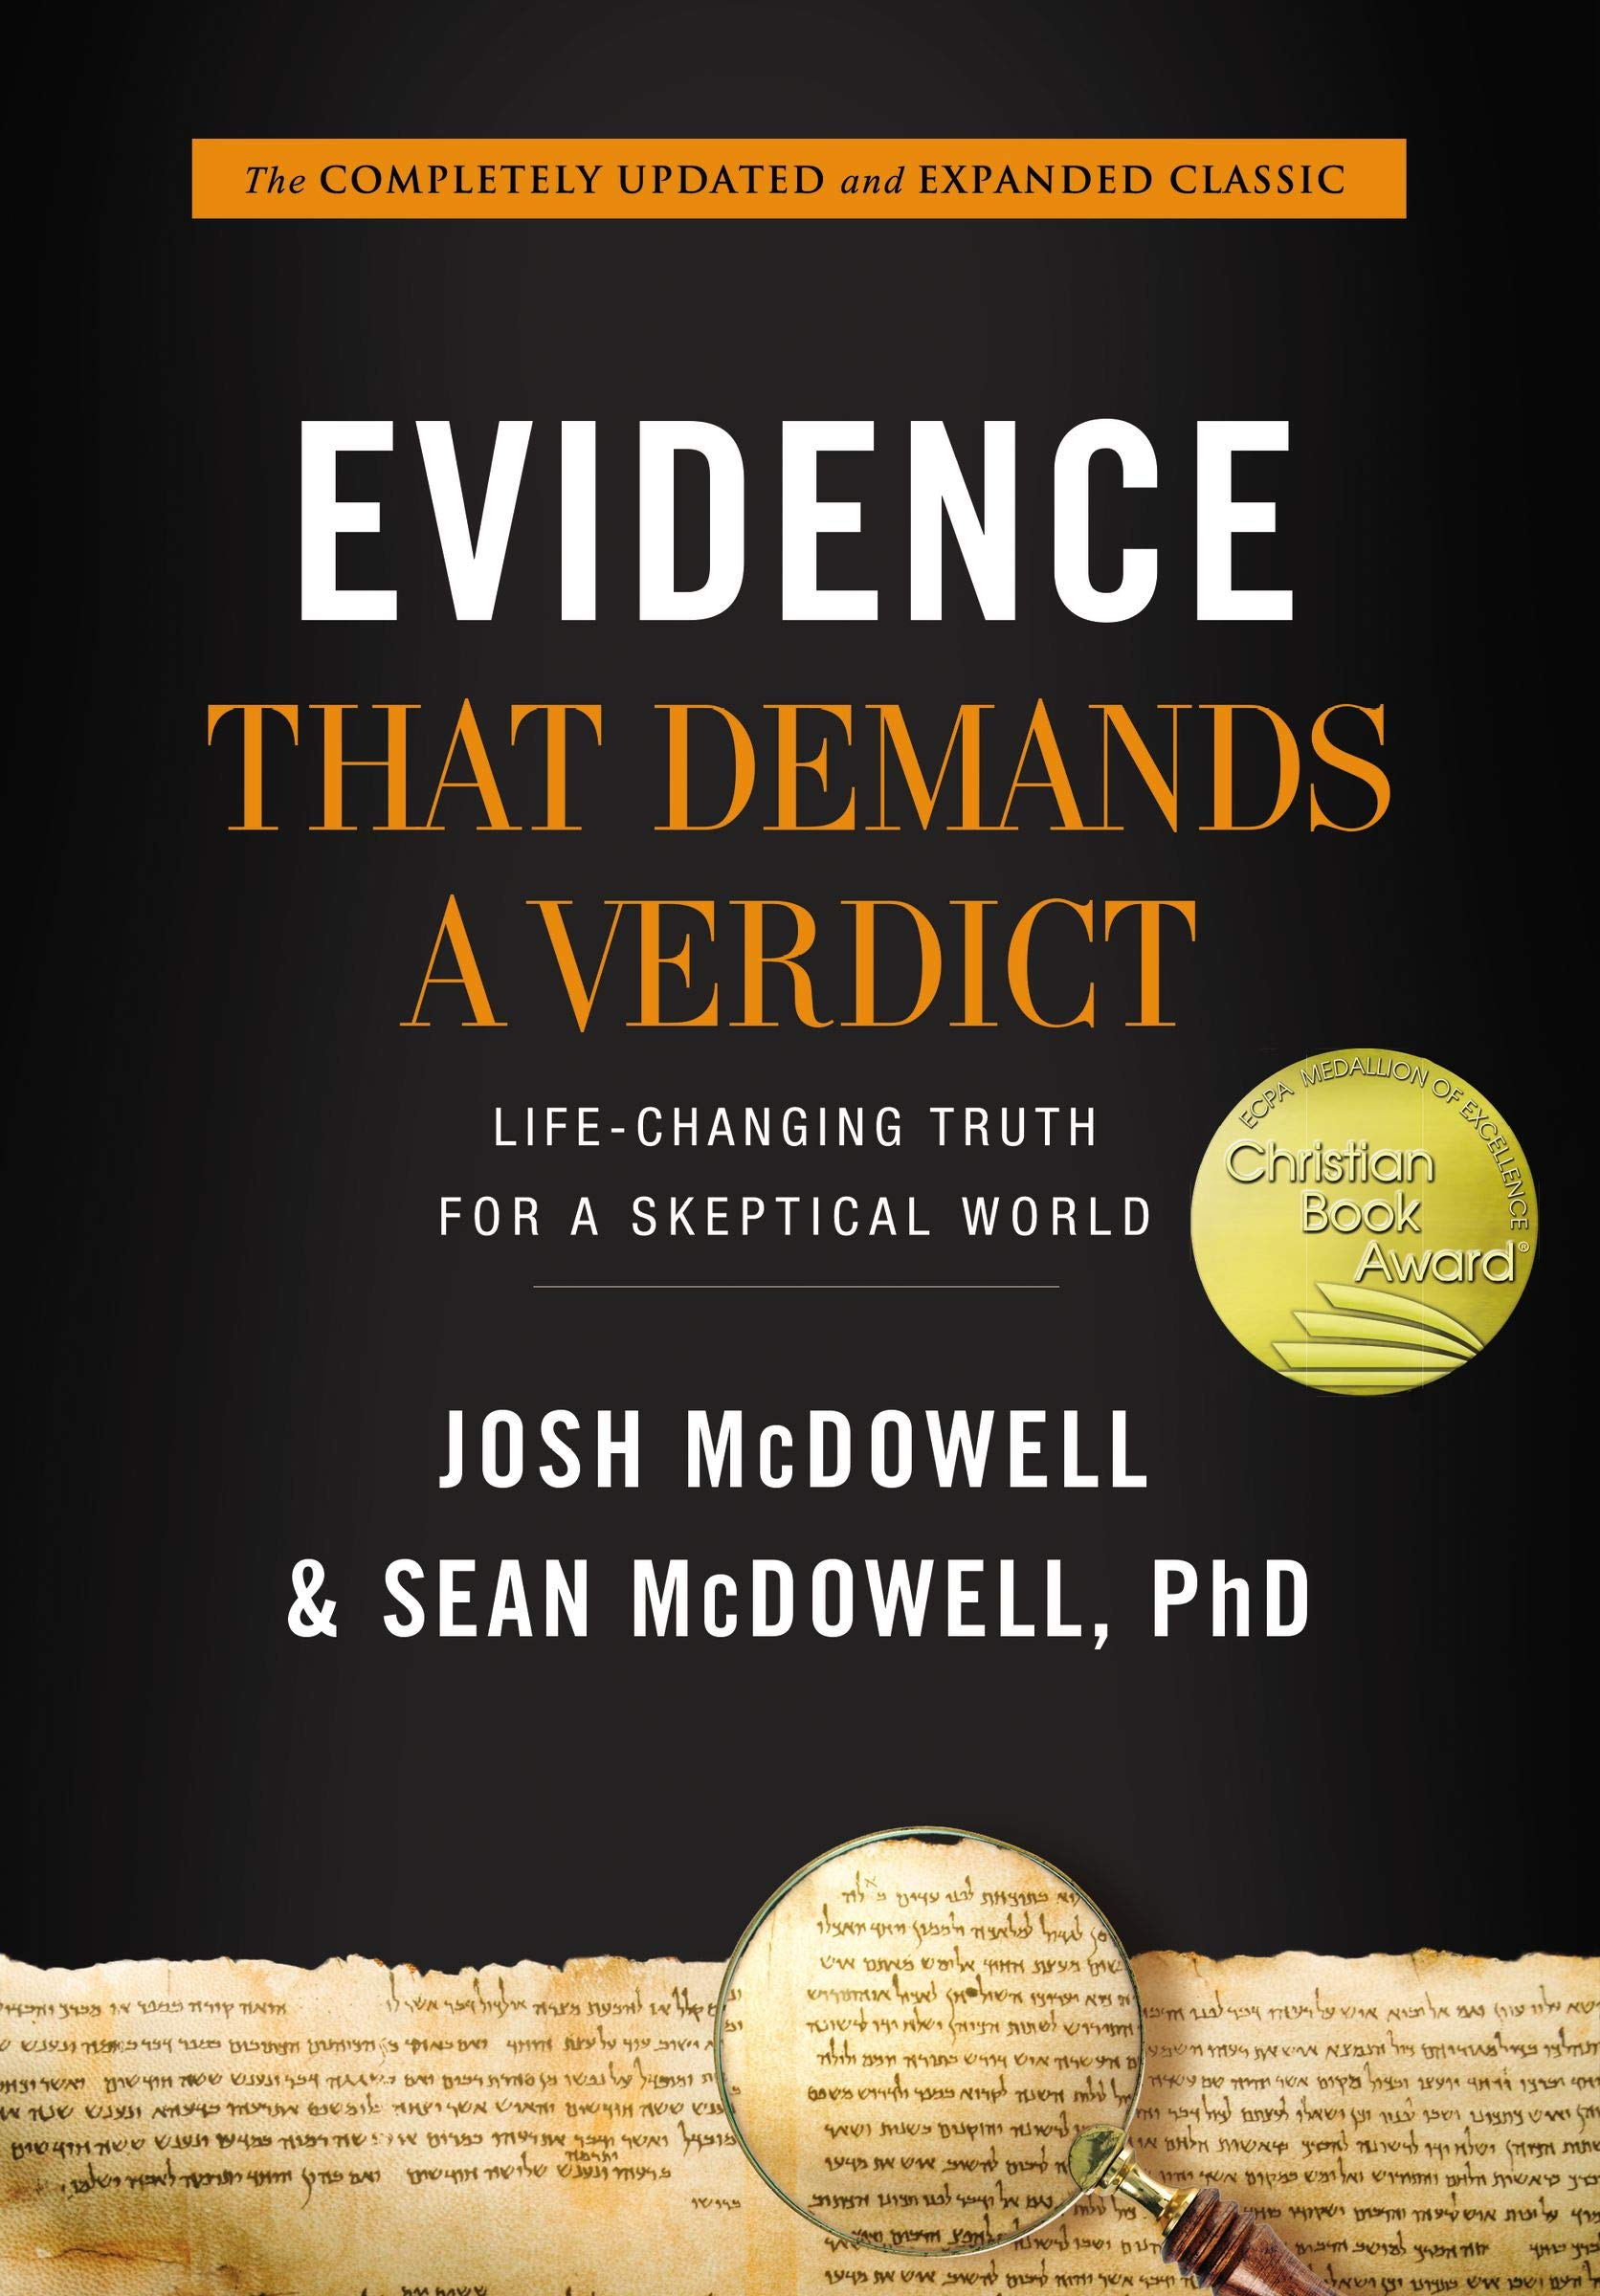 Evidence That Demands a Verdict: Life-Changing Truth for a